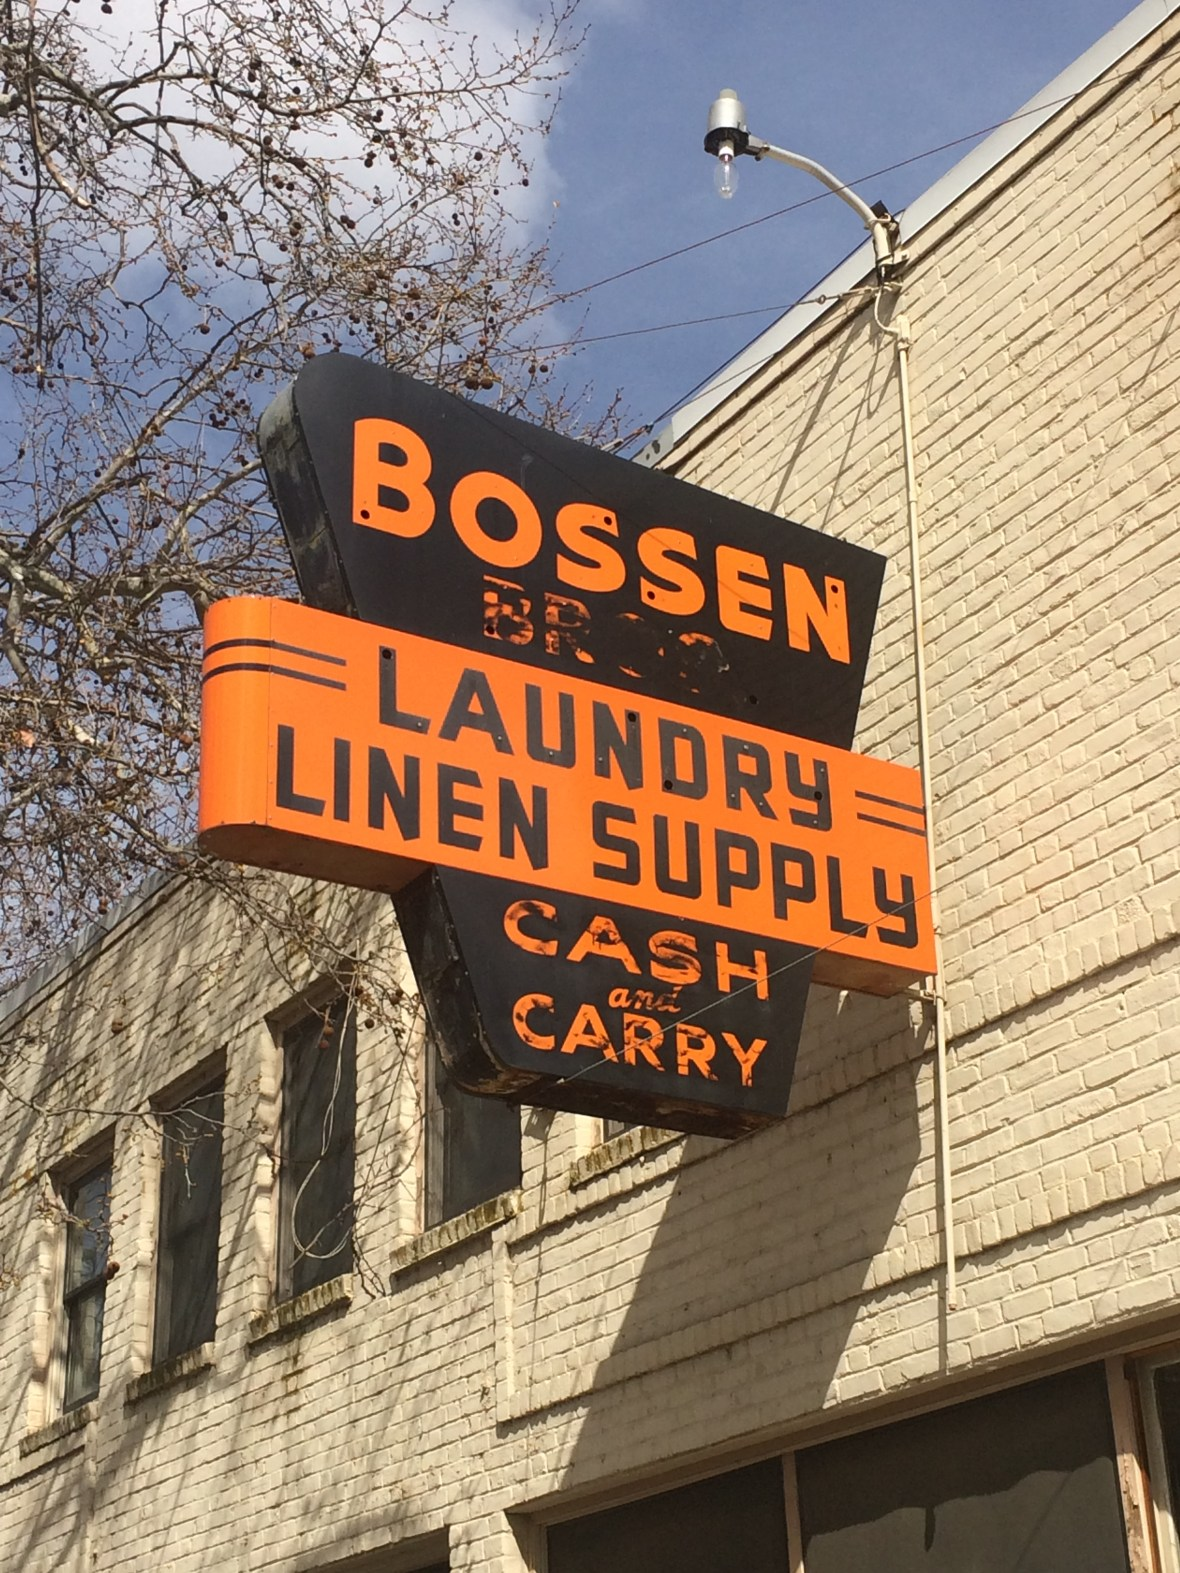 Bossen Bros. Laundry - 222 3rd Street, Marysville, California U.S.A. - March 8, 2018